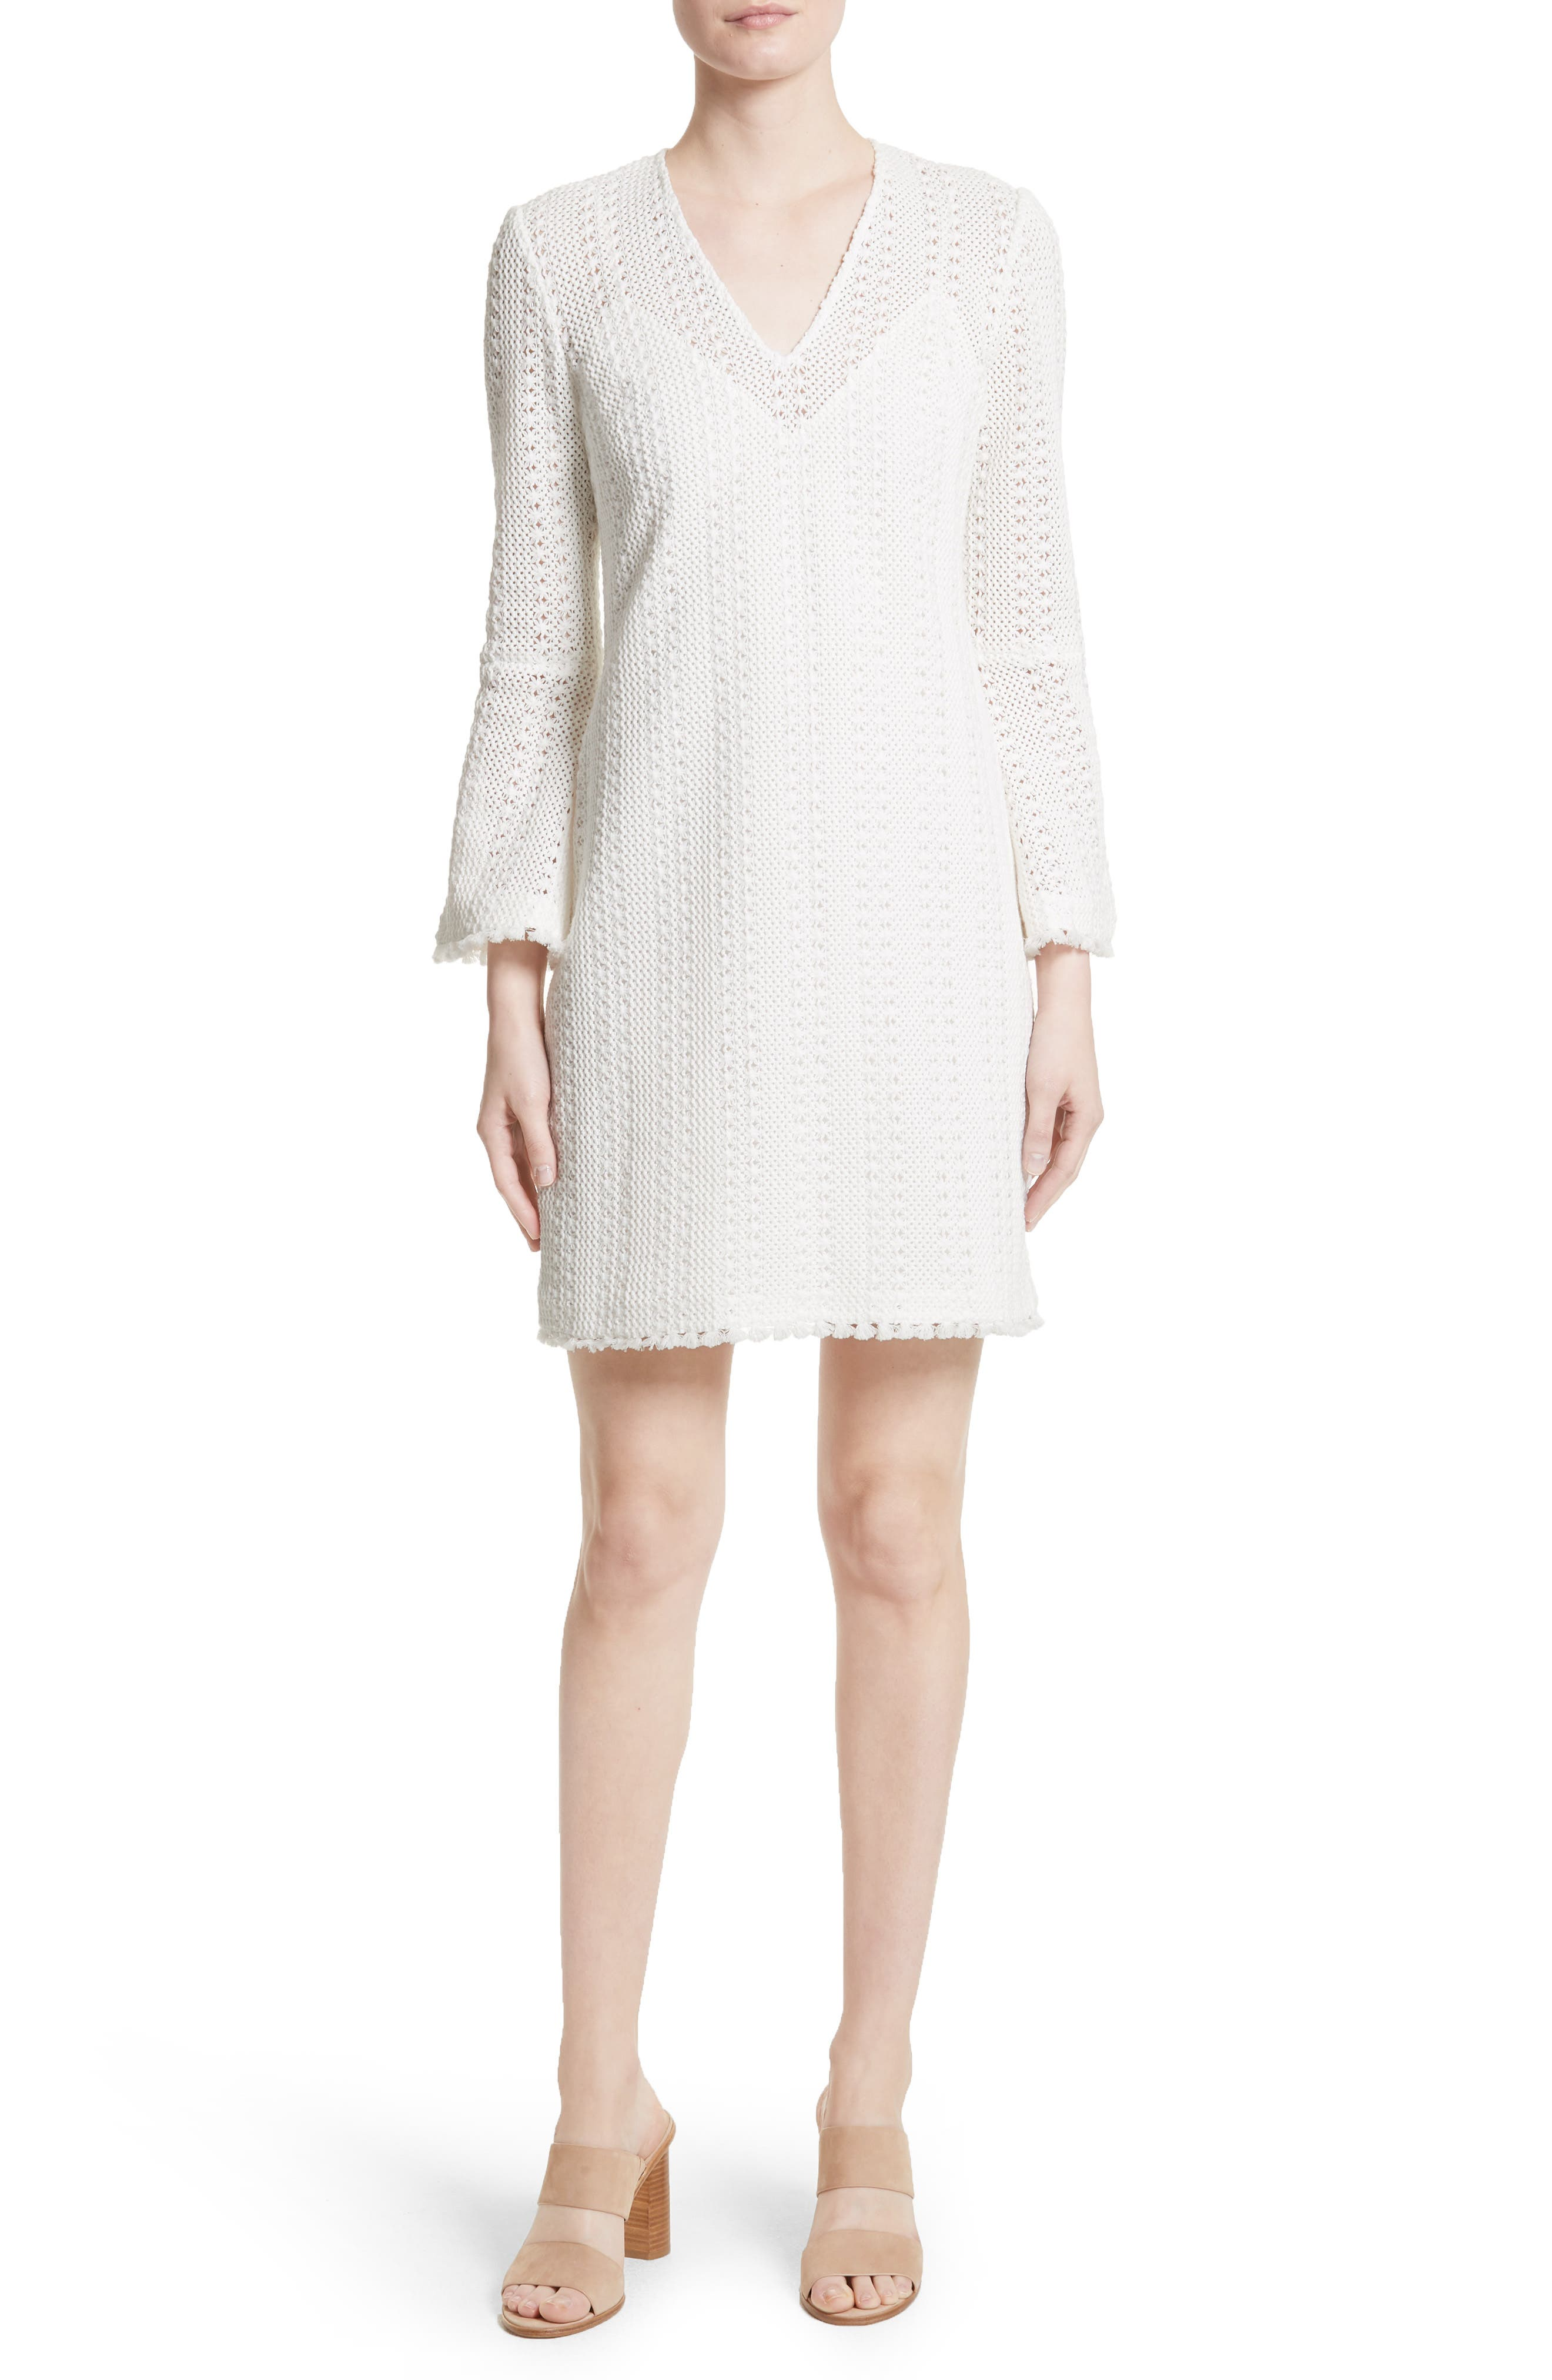 Derek Lam 10 Crosby Bell Sleeve Crochet Shift Dress